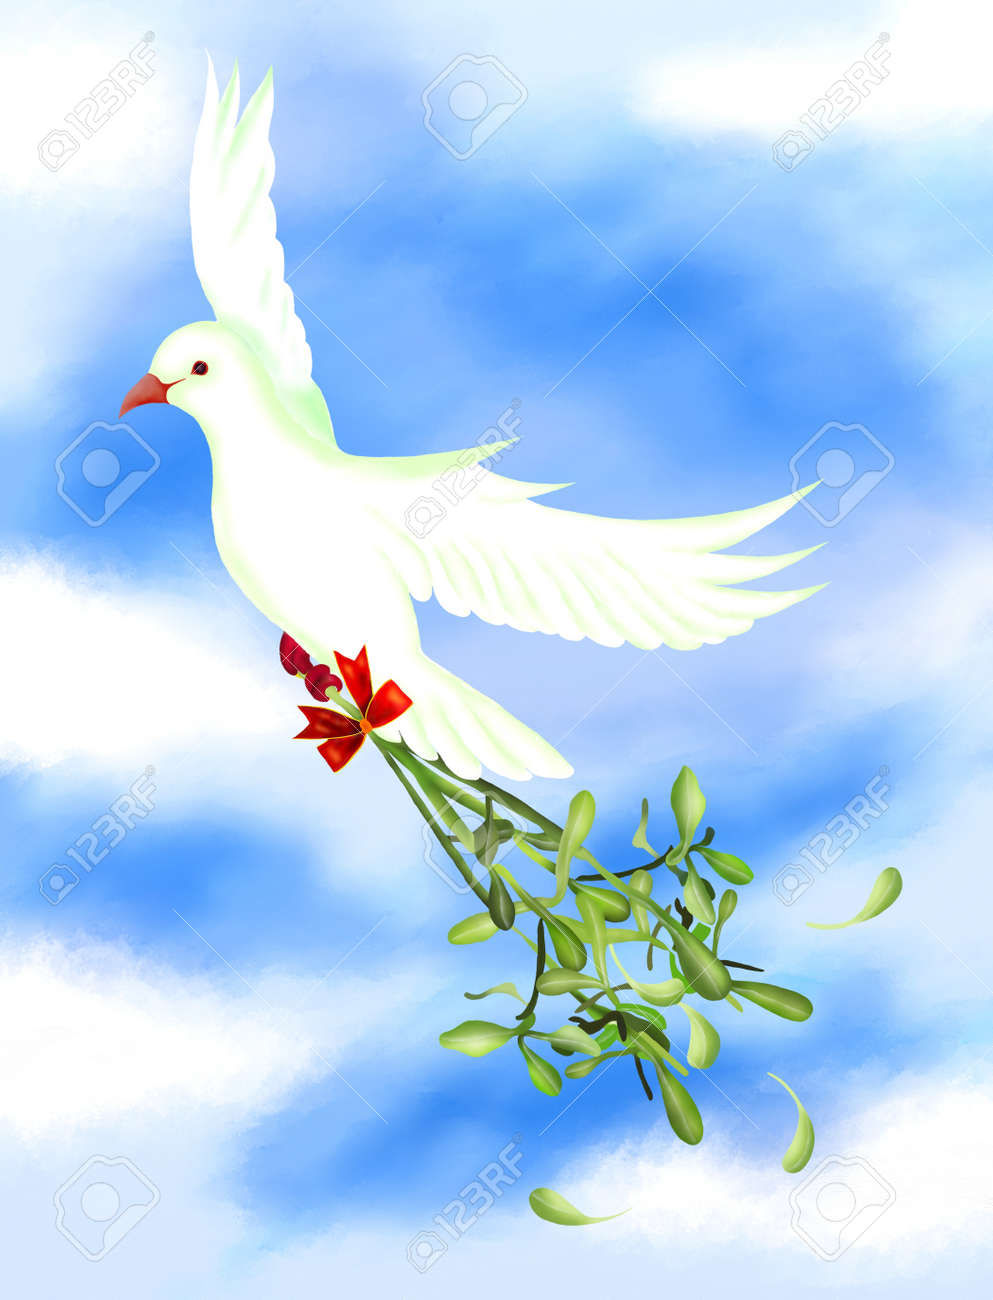 White Pigeons Flying In The Sky And Carrying A Mistletoe Bunch